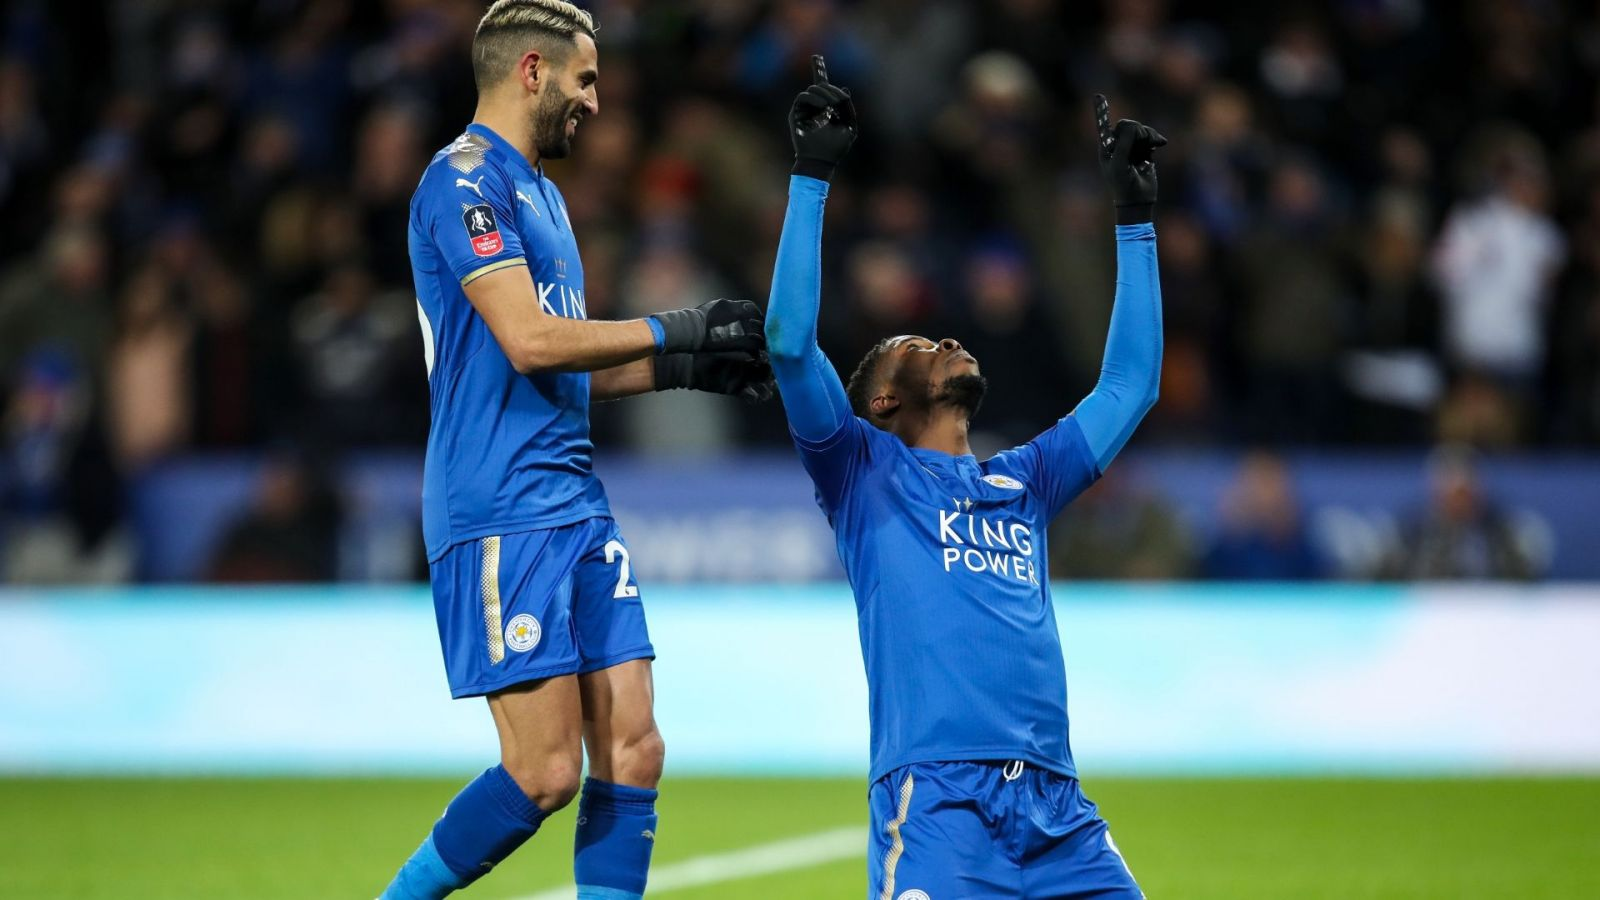 Leicester City 2-0 Fleetwood Town